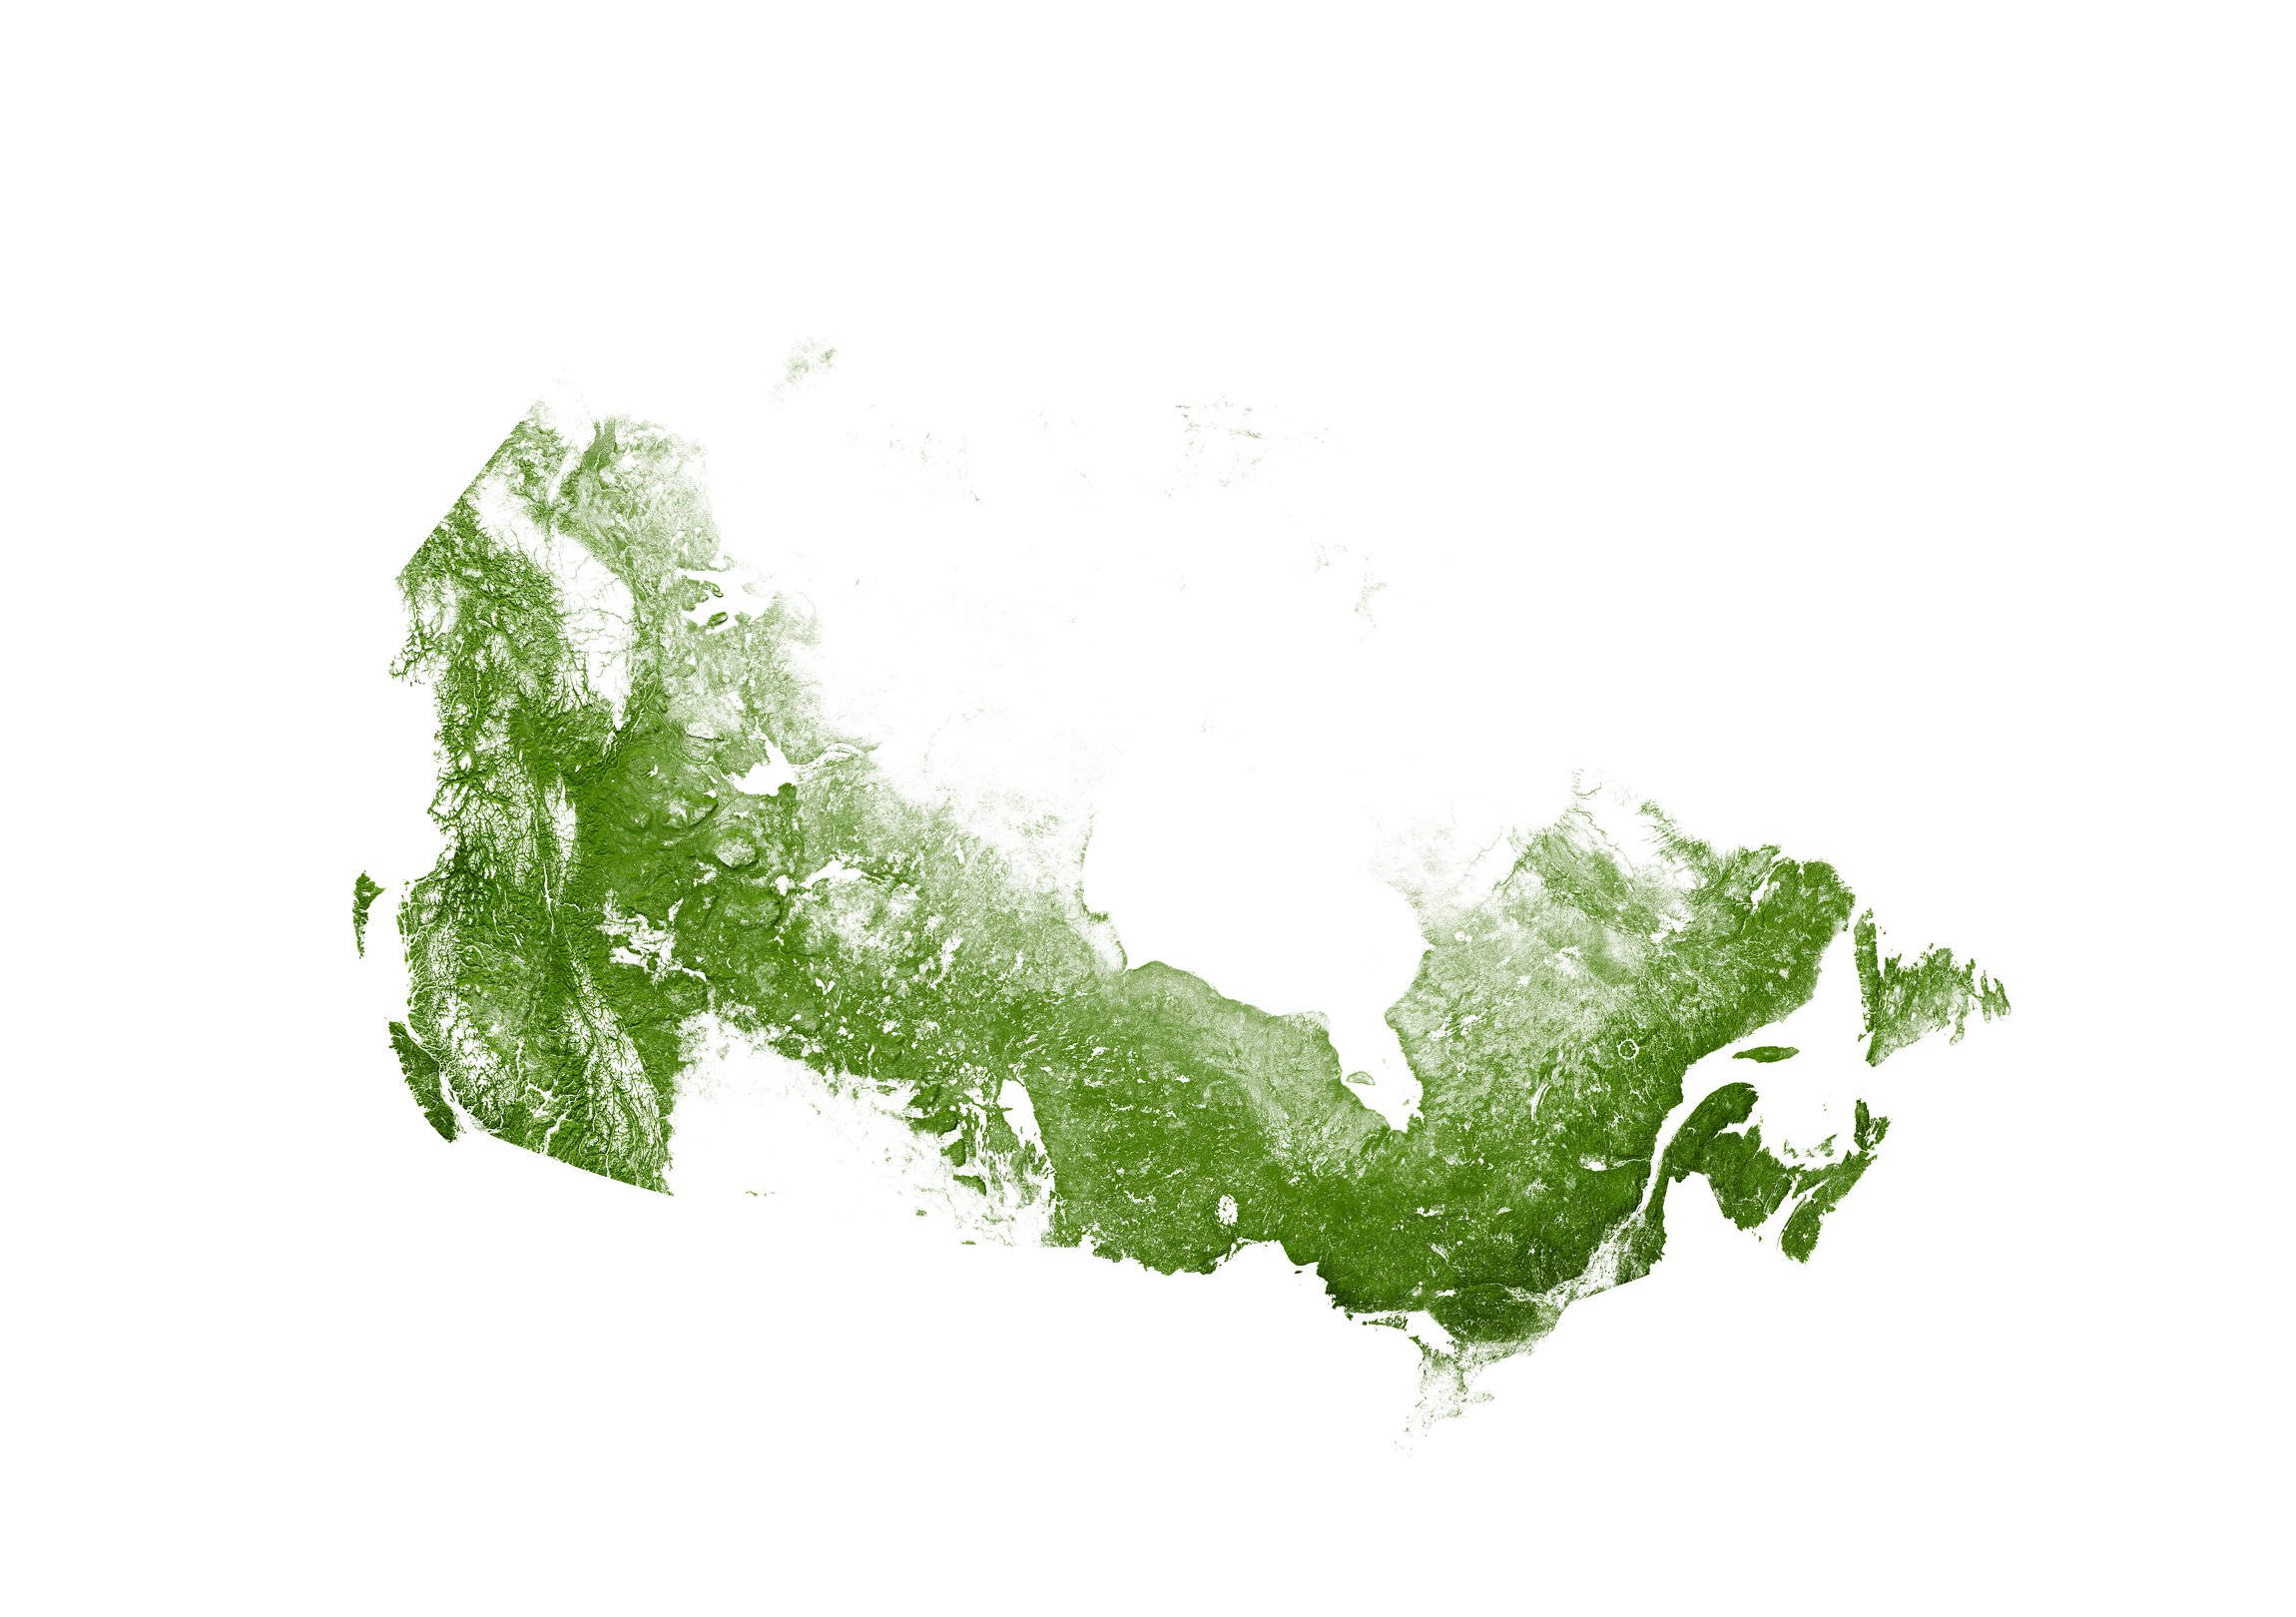 Roads of Canada, Trees Map